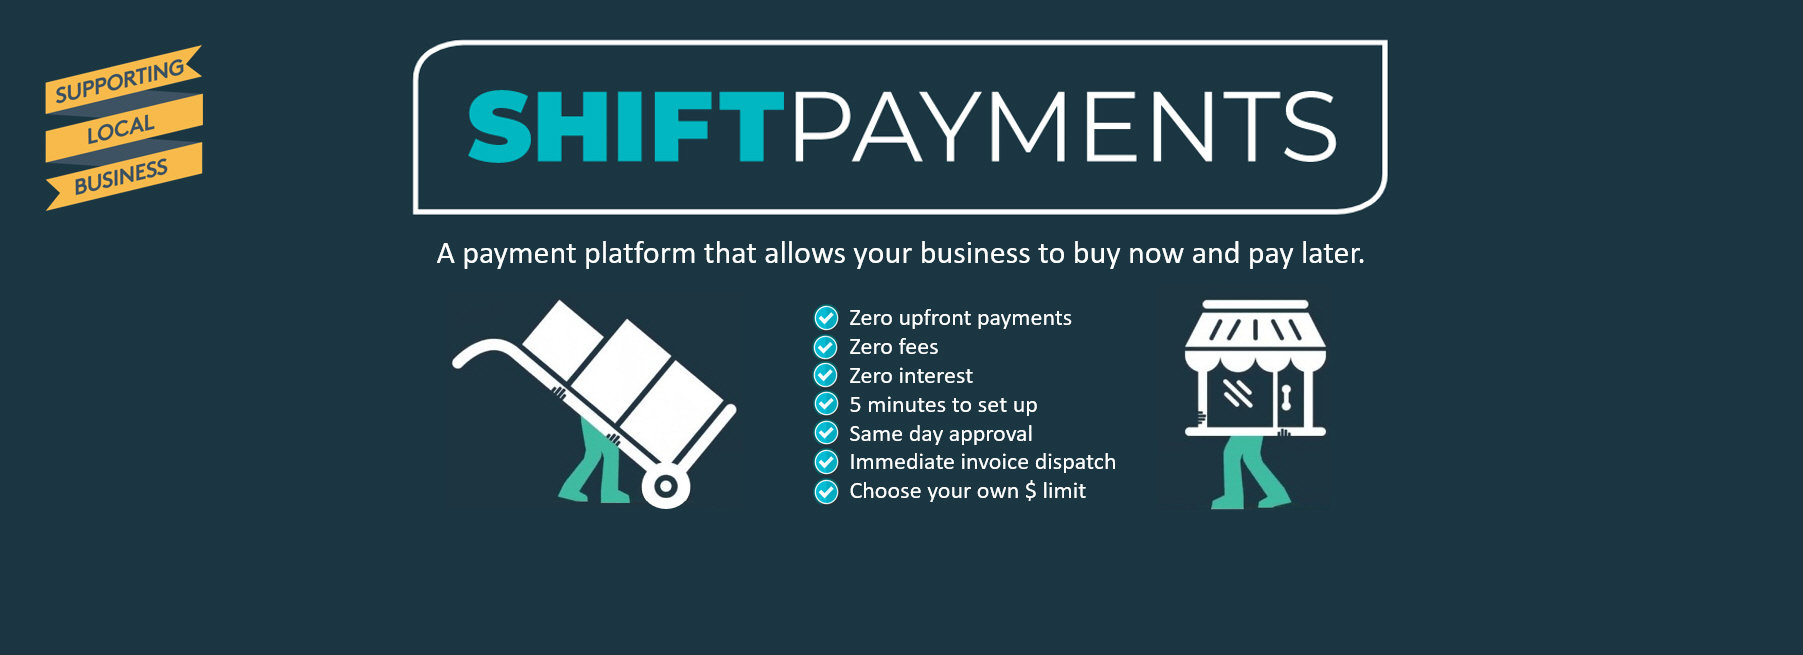 Shift Payments.jpg